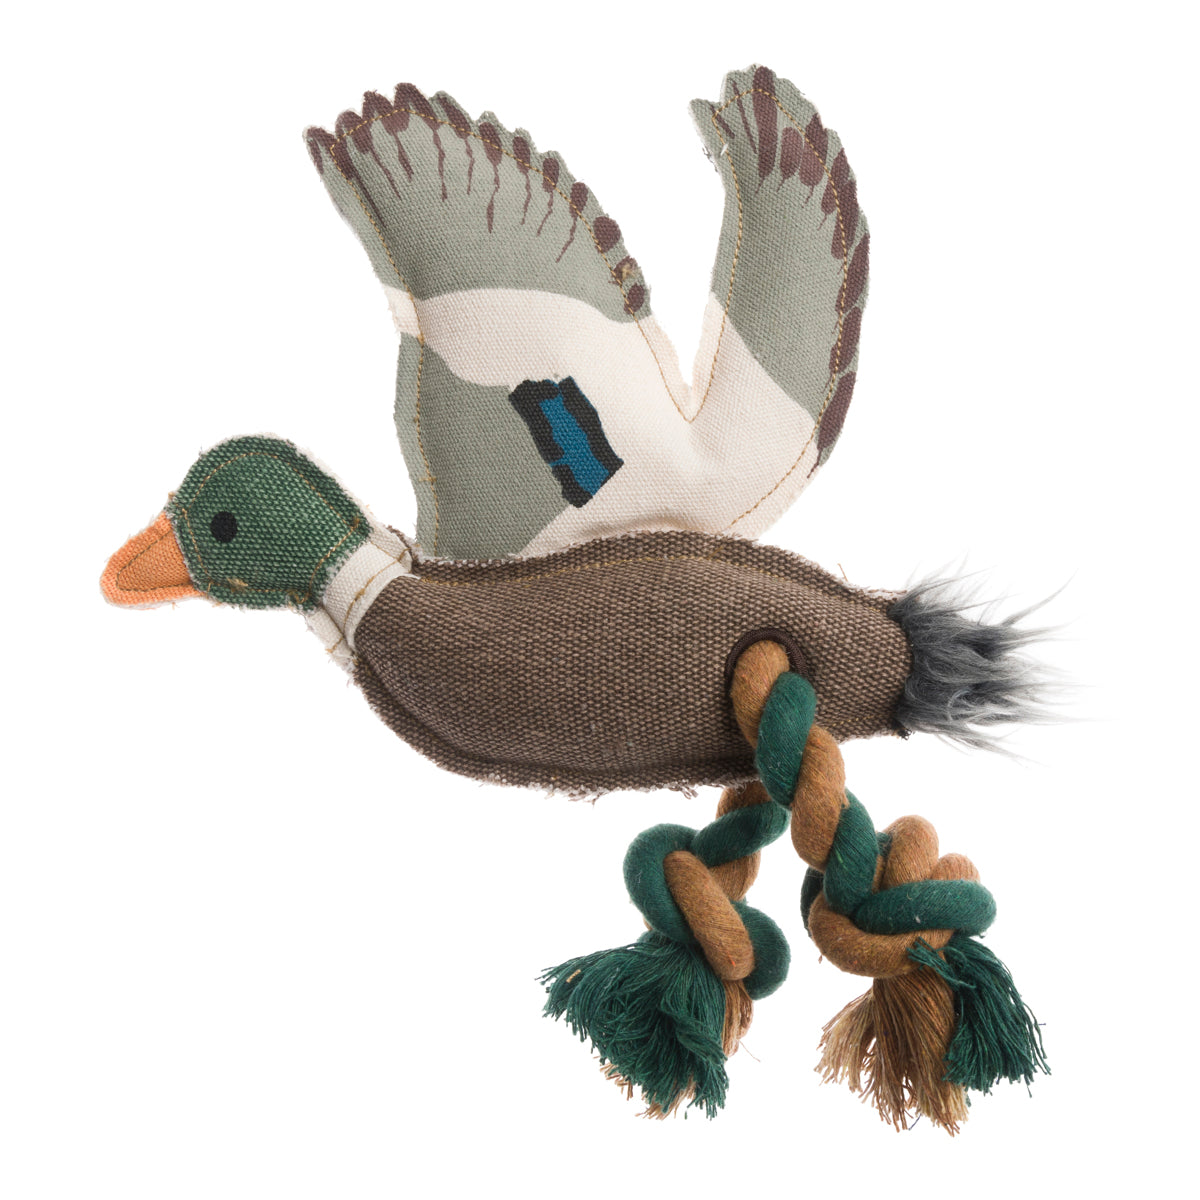 Ducks dog toy by Sophie Allport